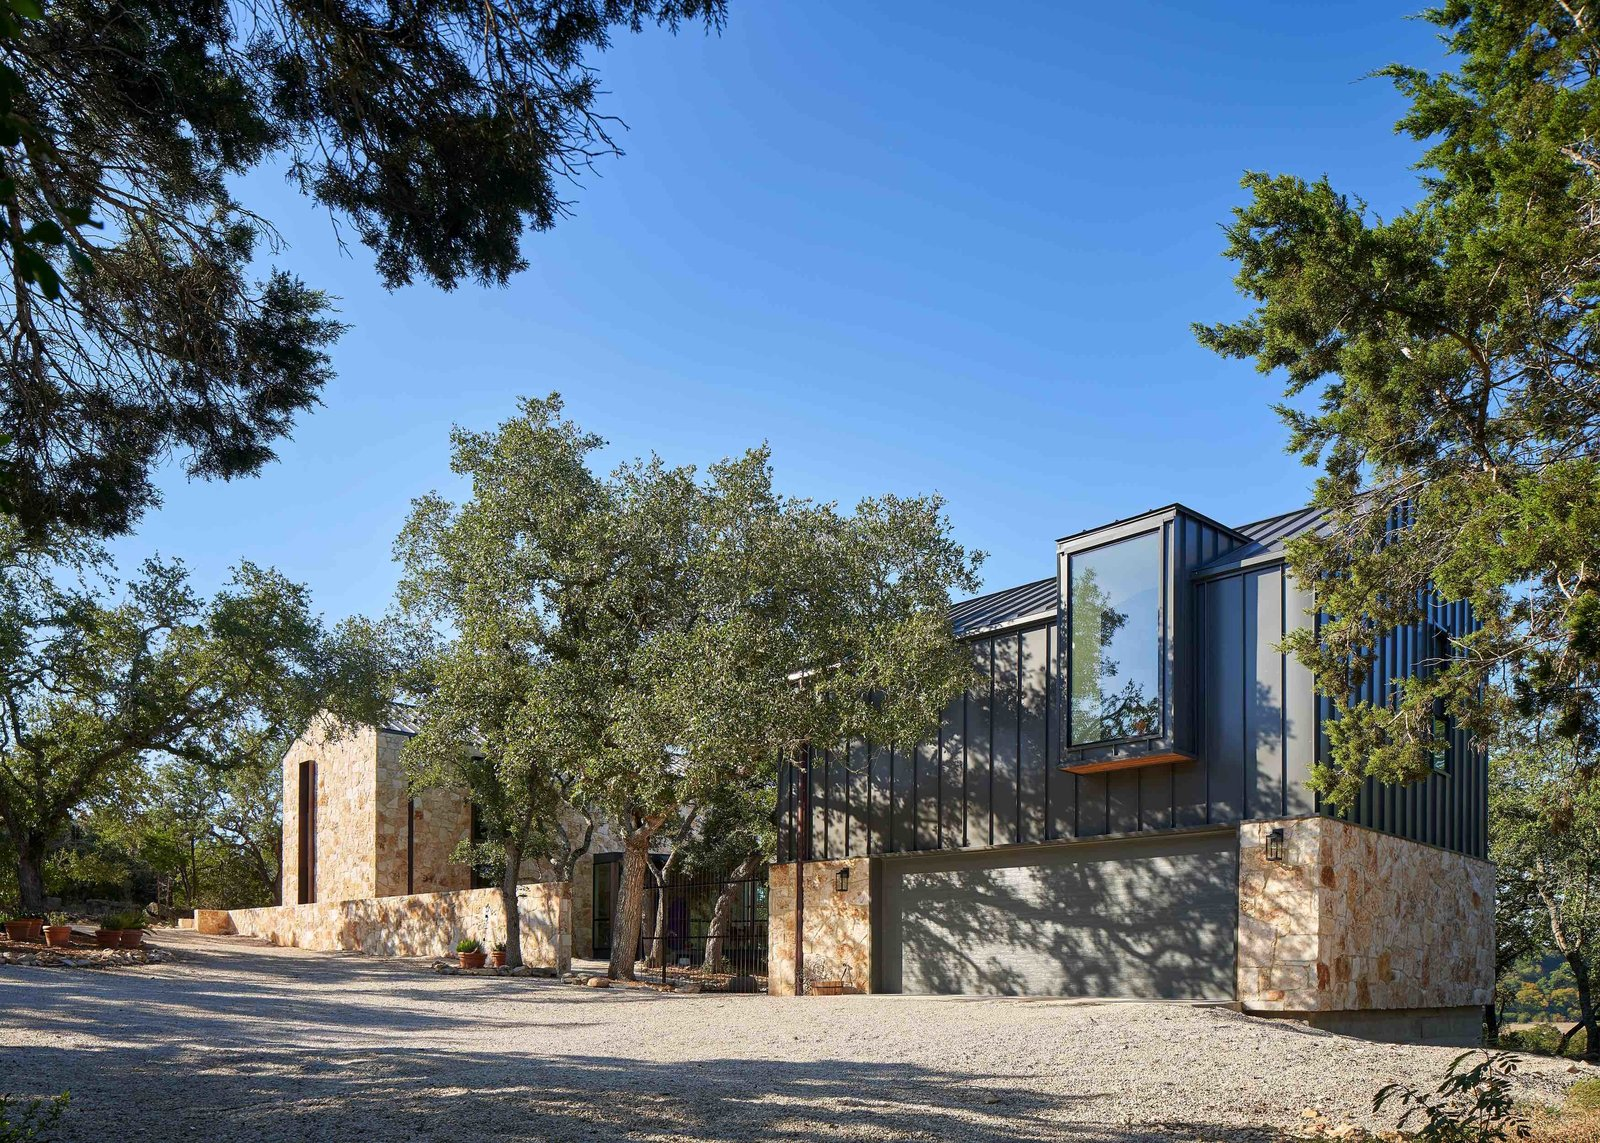 The couple, who both have engineering backgrounds, enjoyed sharing their ideas with the architects. The result is their Hill Country dream home.